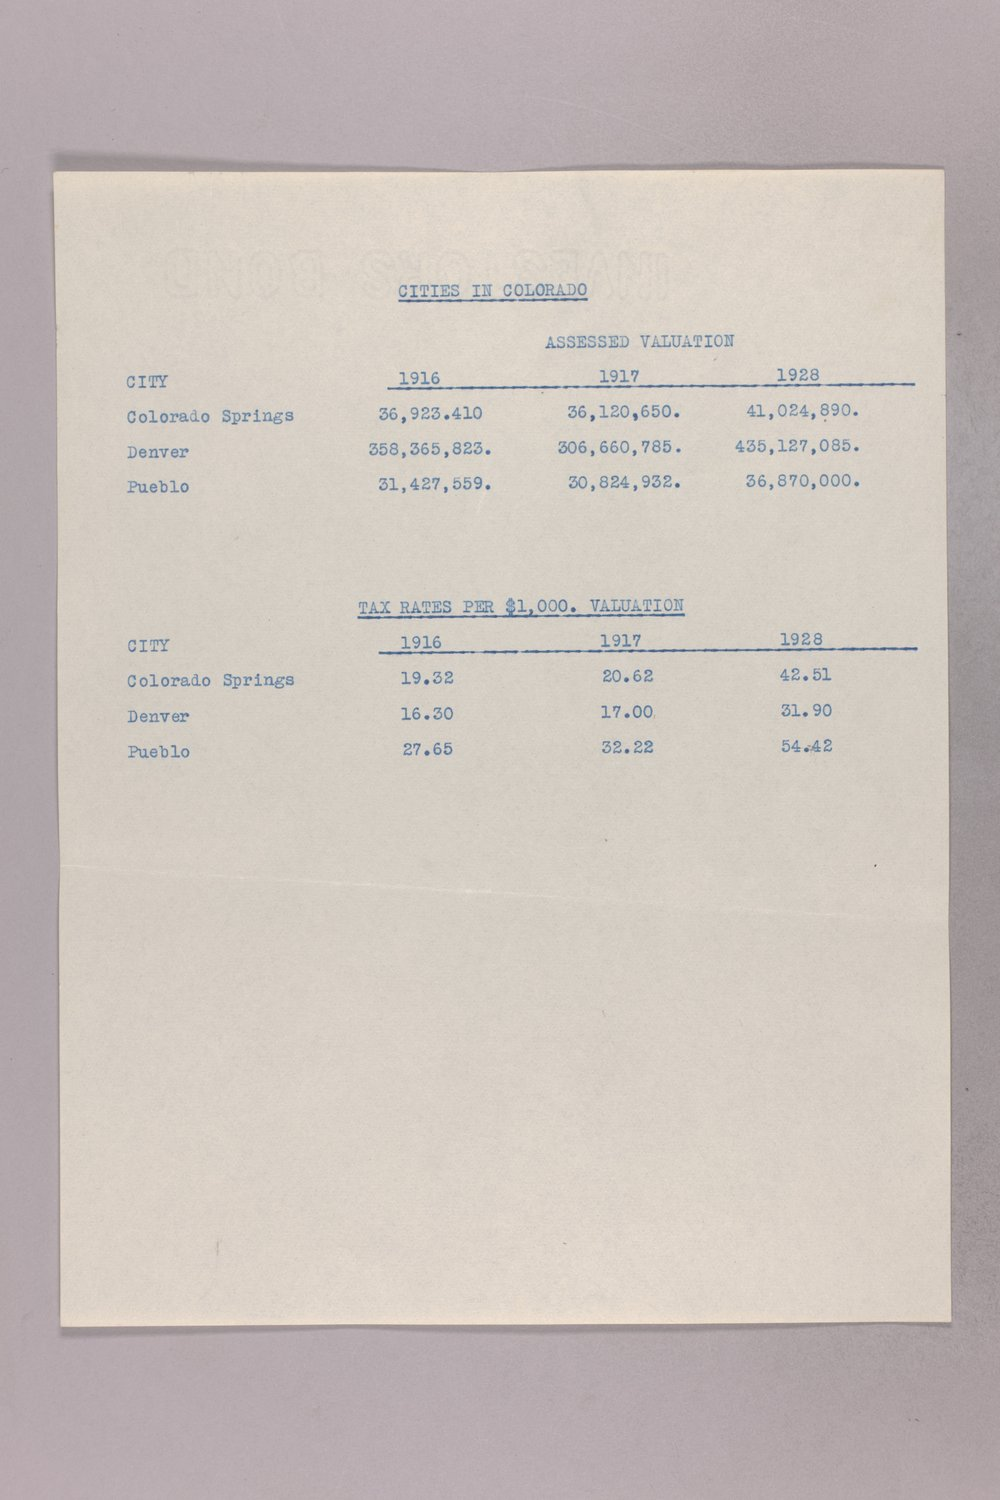 Governor Clyde M. Reed correspondence, tax matters - 4